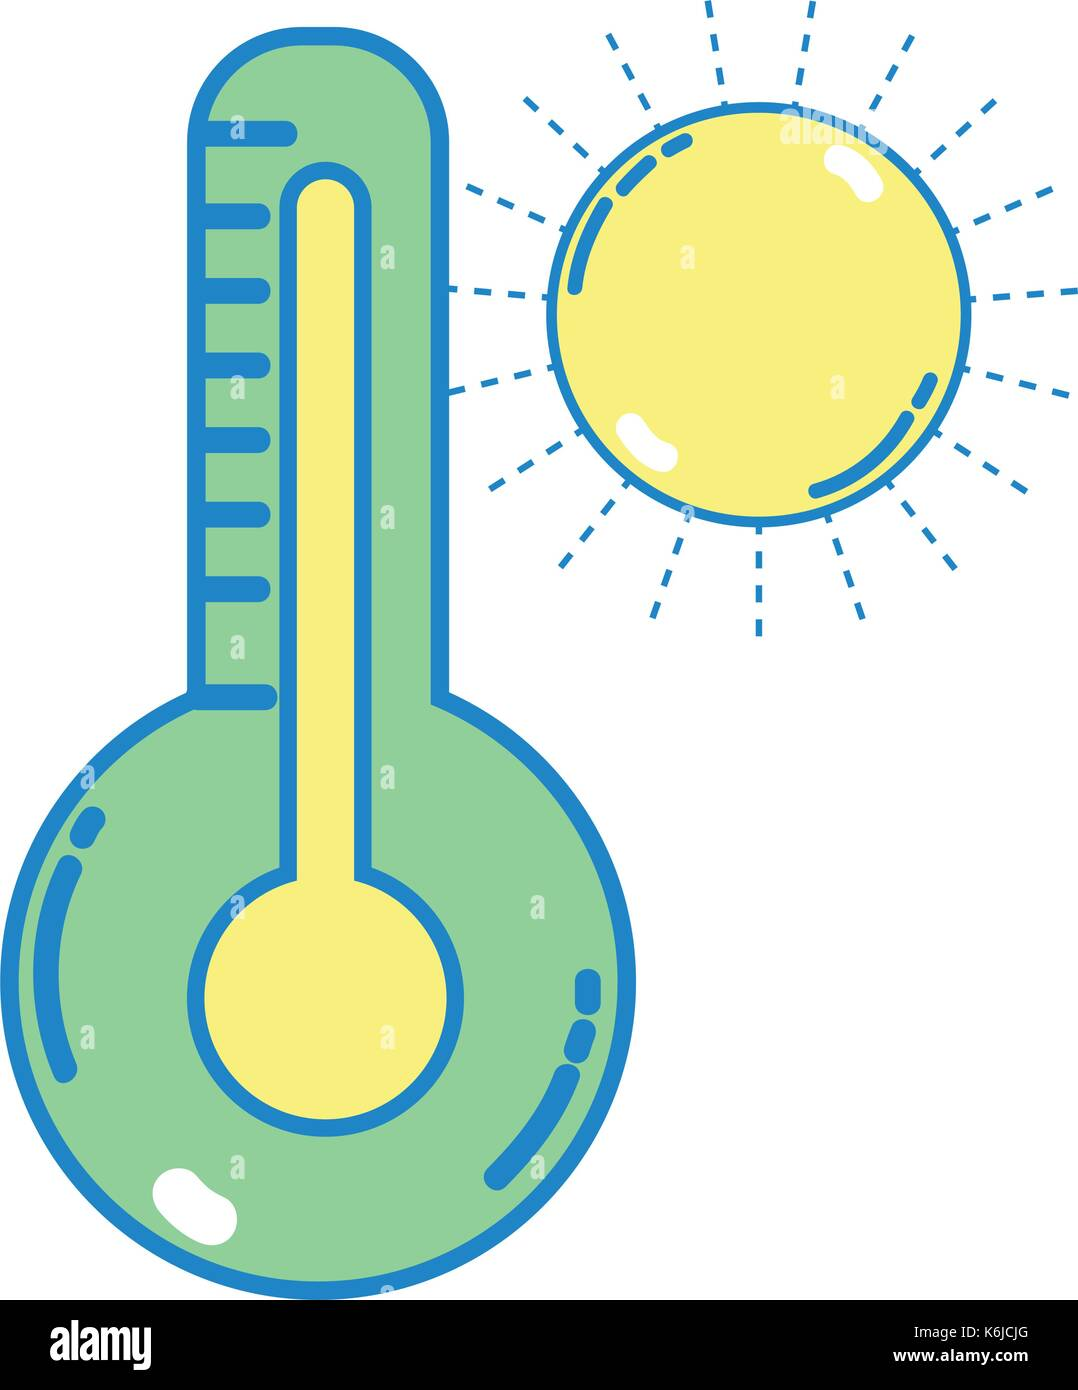 thermometer measure instrument to know the temperature - Stock Image